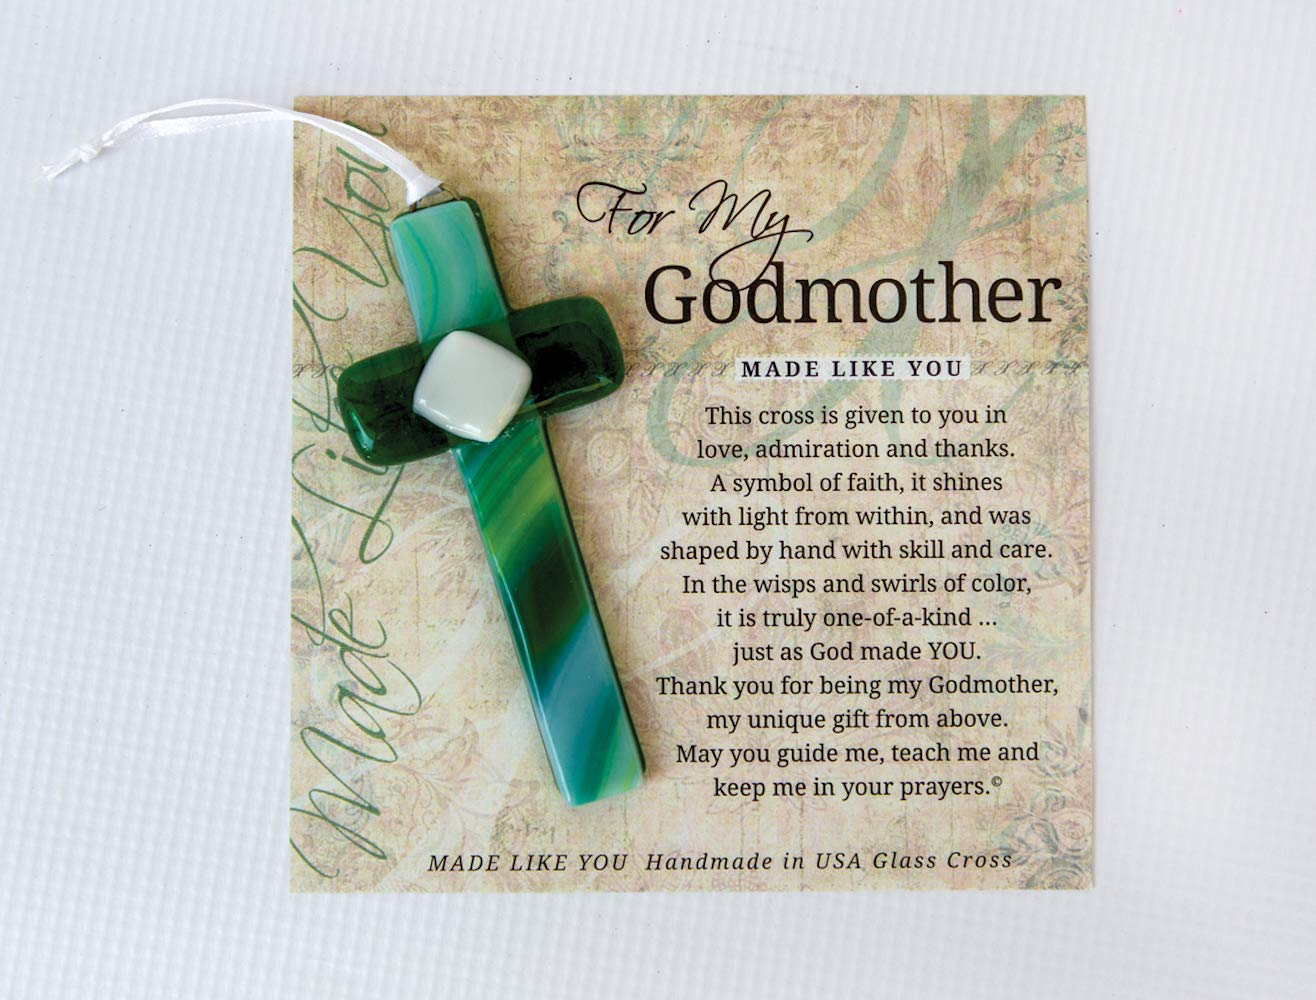 Grandparent Gifts For My Godmother Handmade Green Glass Cross Size 4 inches